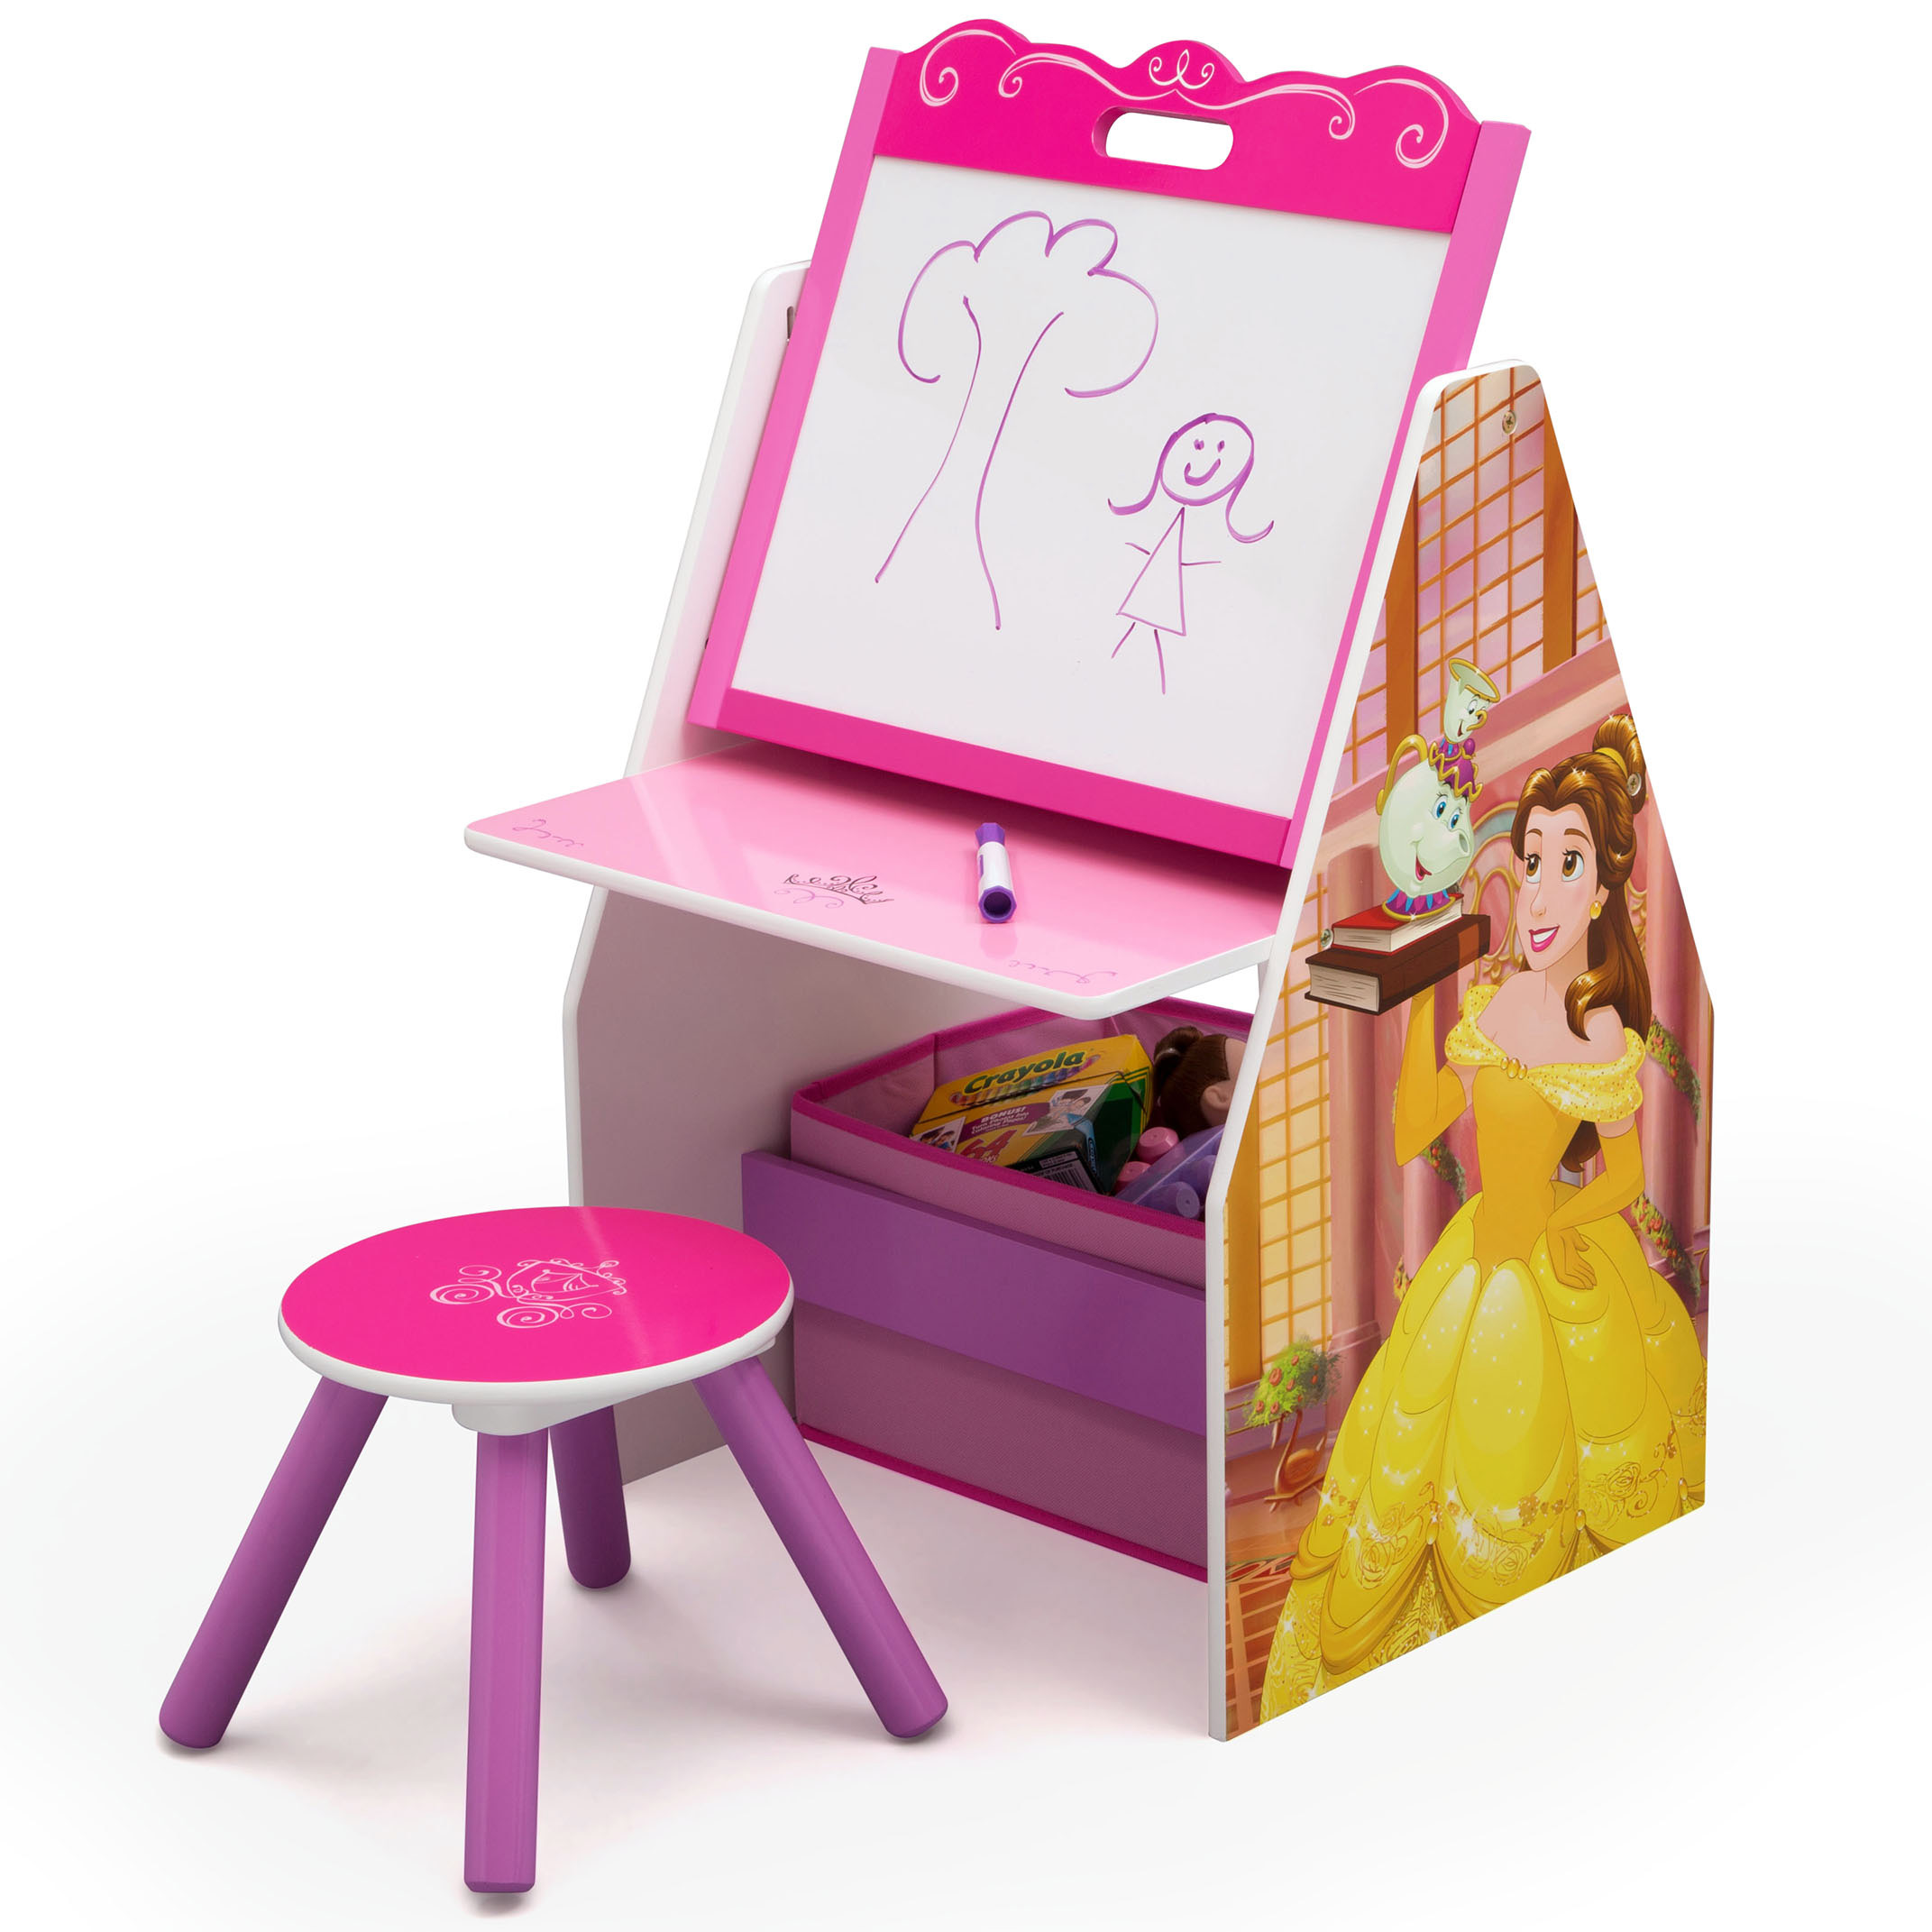 Disney Princess Activity Center - Easel Desk with Stool & Toy Organizer